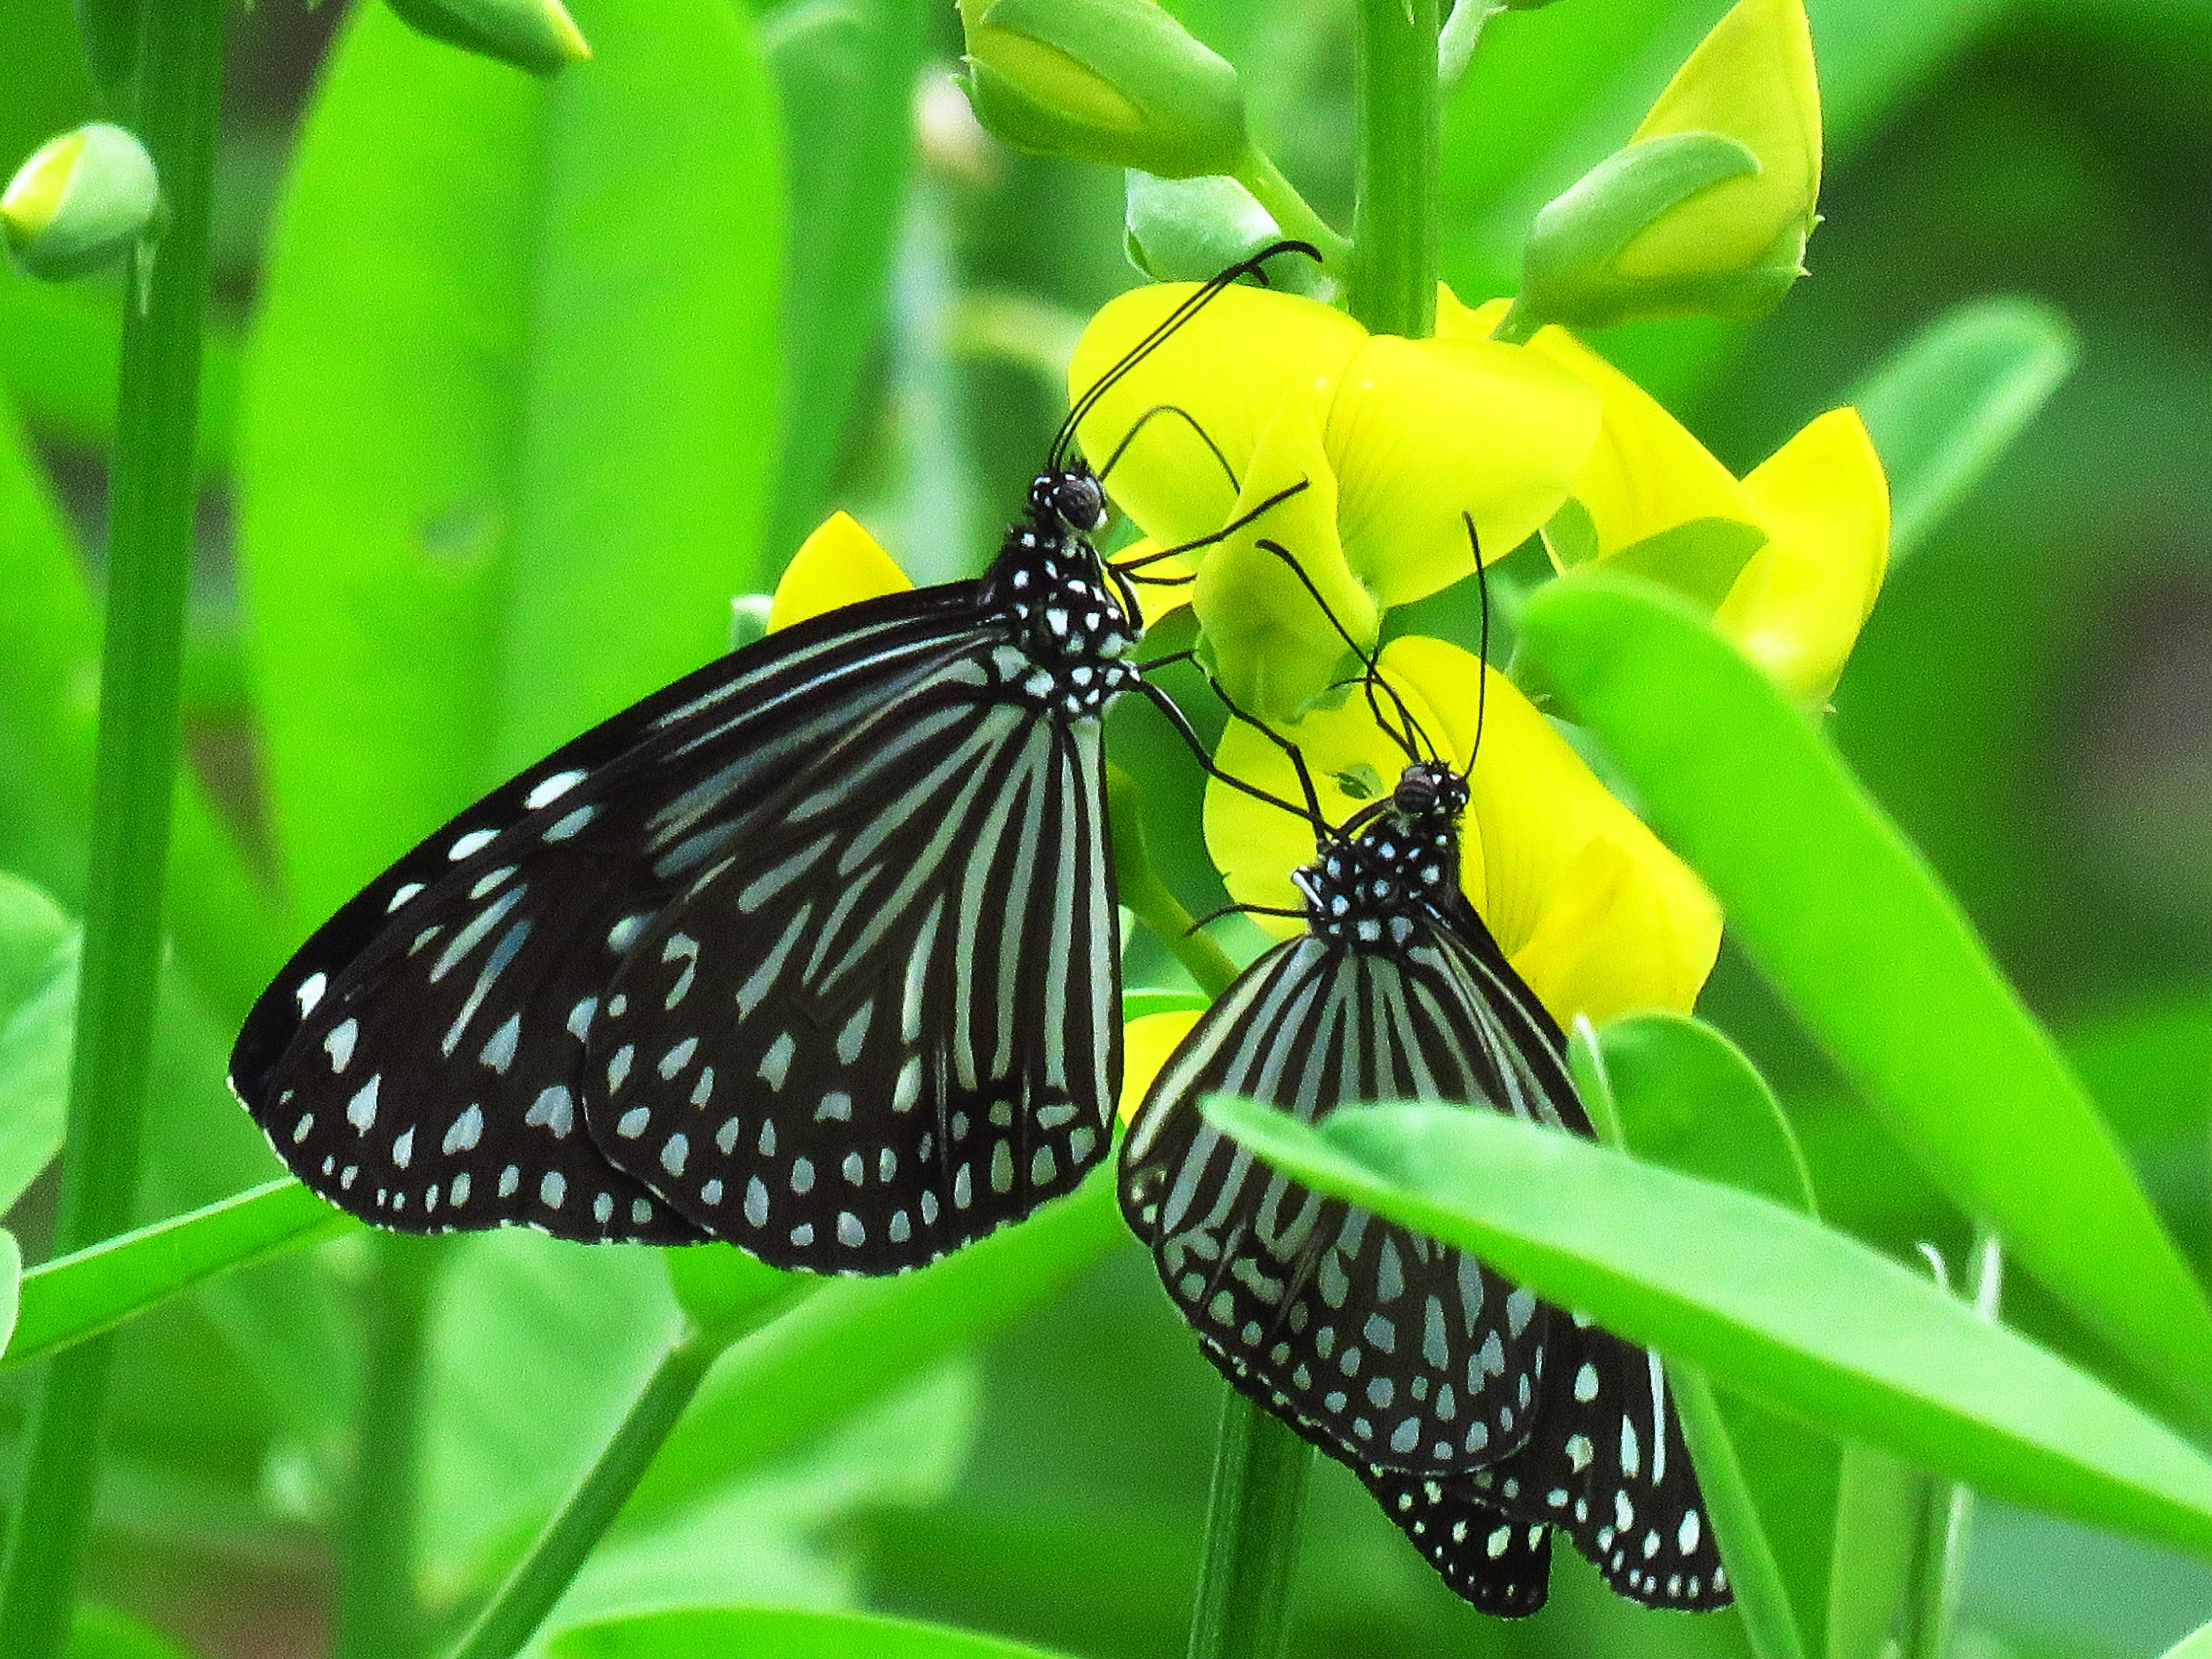 Two Black-and-gray Butterflies Perching on Yellow Flower